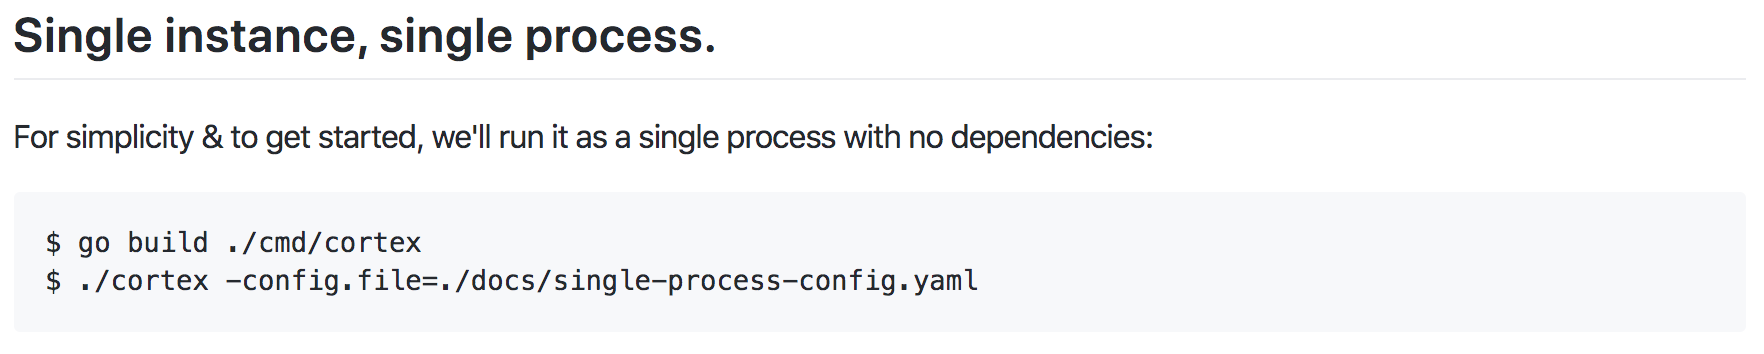 Coding the Single Instance and Process